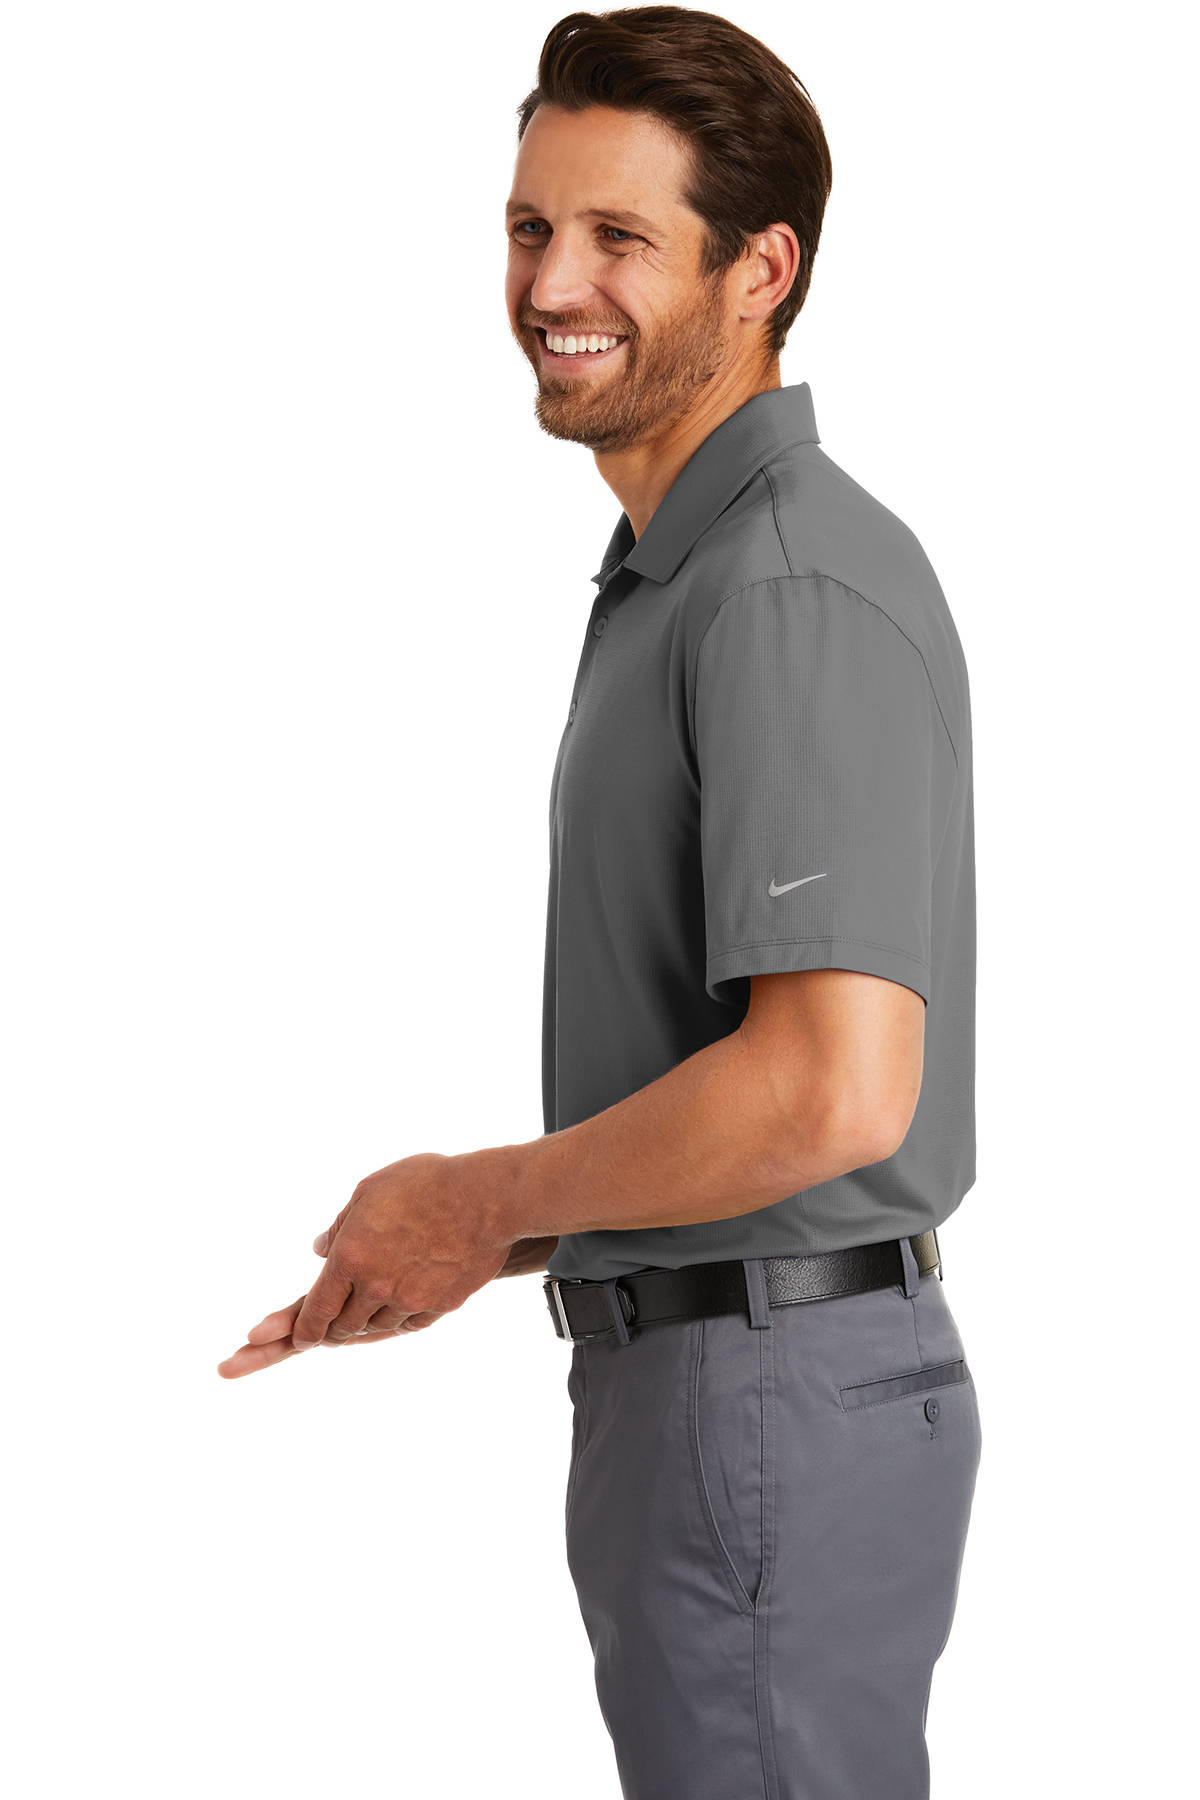 ... Performance; Nike Dri-FIT Legacy Polo. A maximum of 8 logos have been  uploaded. Please remove a logo from My Logos to continue